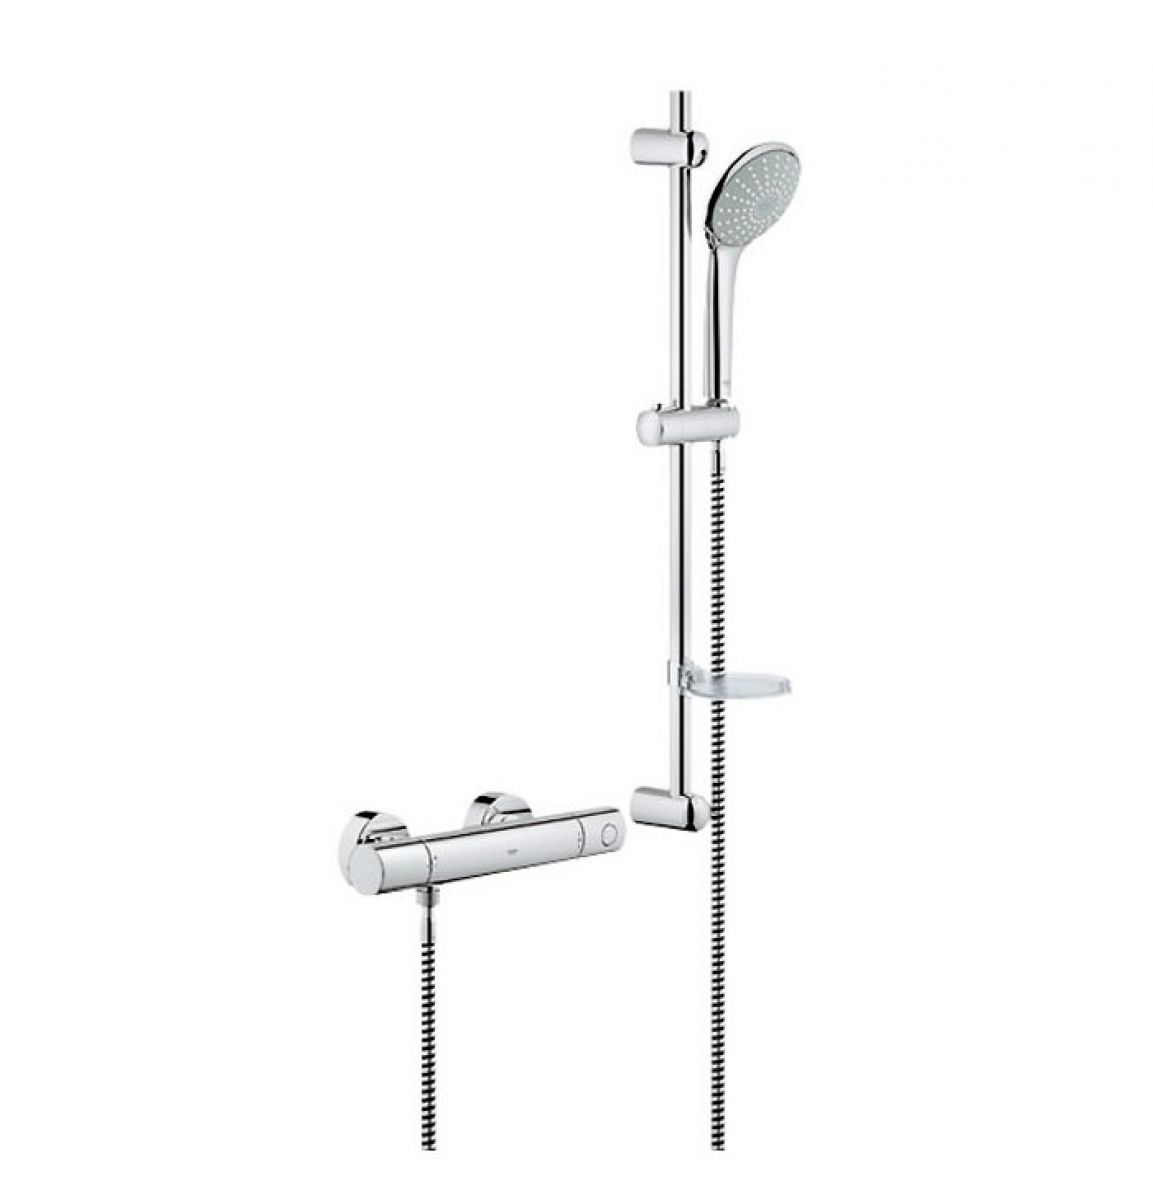 grohe grohtherm 1000 cosmopolitan thermostatic shower valve with euphoria shower and rail uk. Black Bedroom Furniture Sets. Home Design Ideas